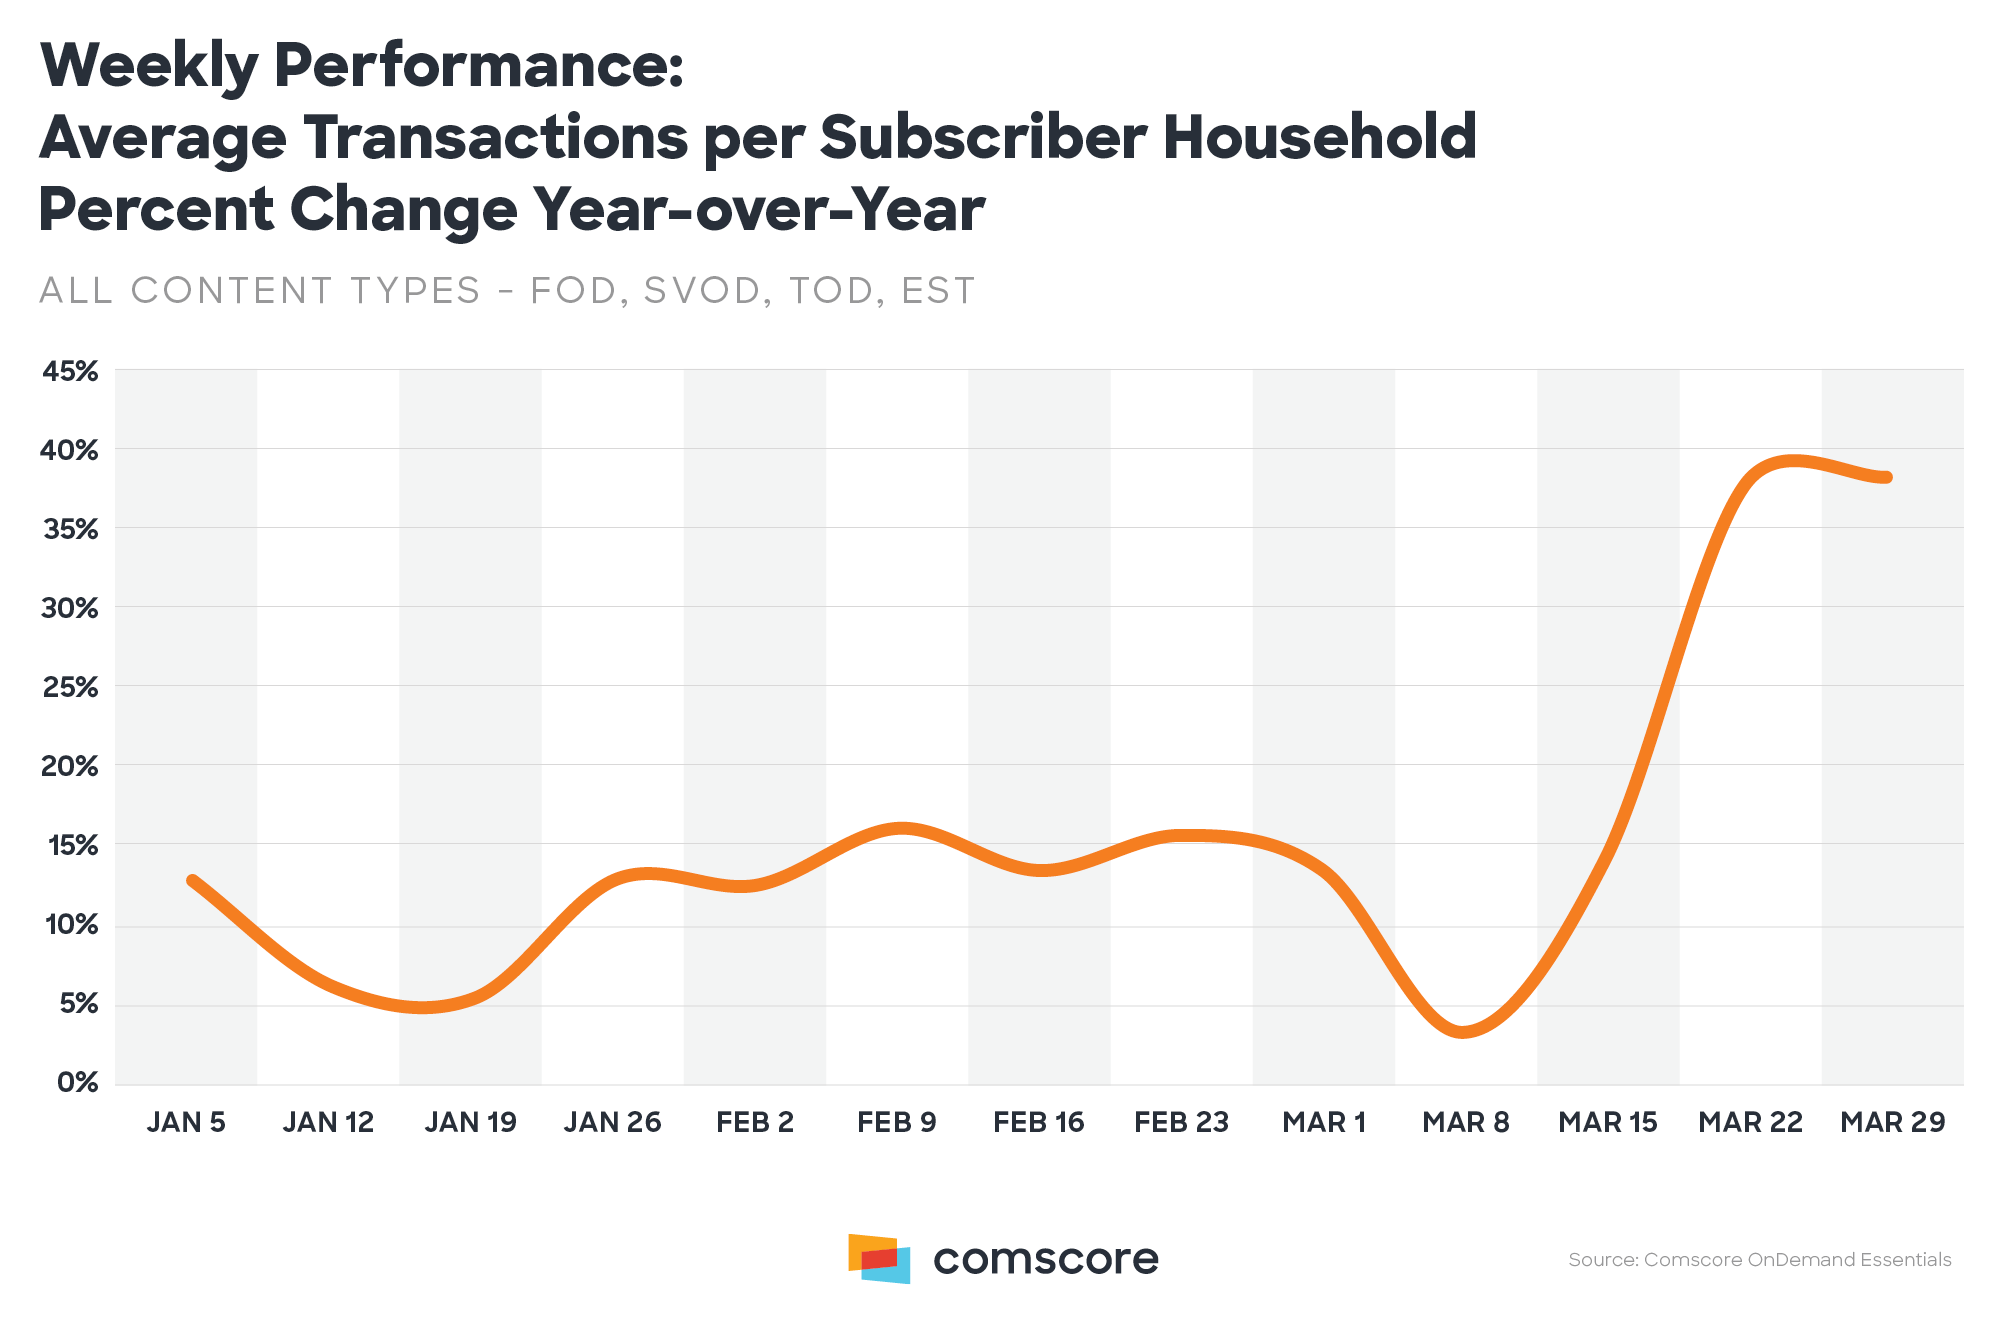 Weekly Performance Average Transactions Per Subscriber Household Change Year over Year